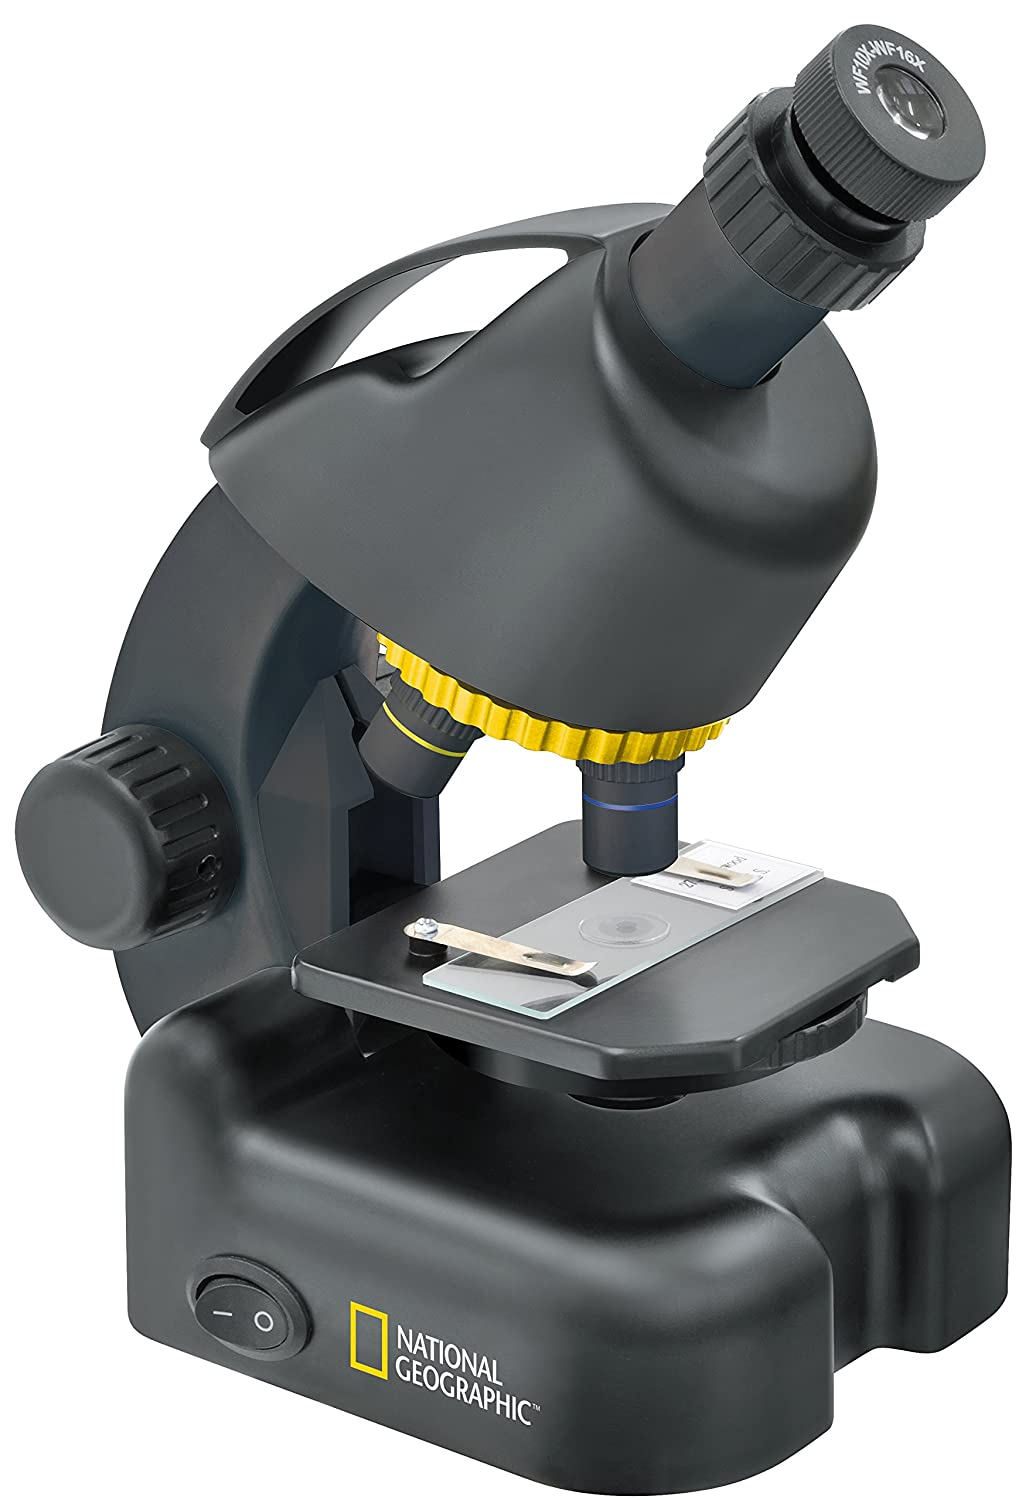 Microscopio National Geographic 40-640x con Soporte para Smartphone Bresser Optics 9119501